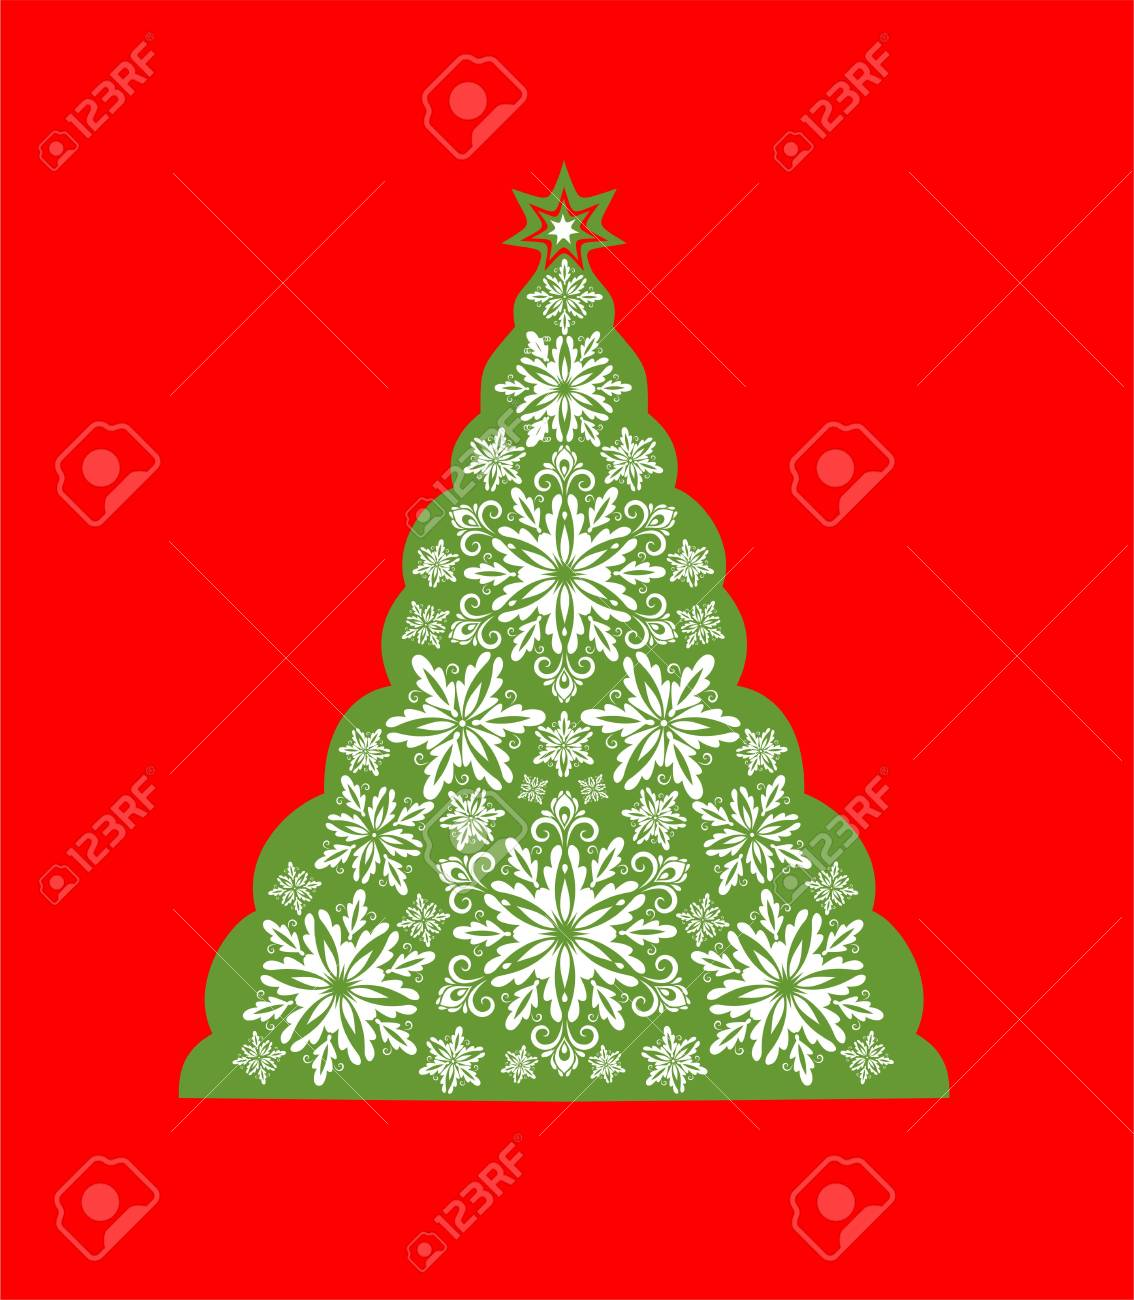 Greeting Card With Cut Out Paper Decorative Snowflakes Xmas Tree